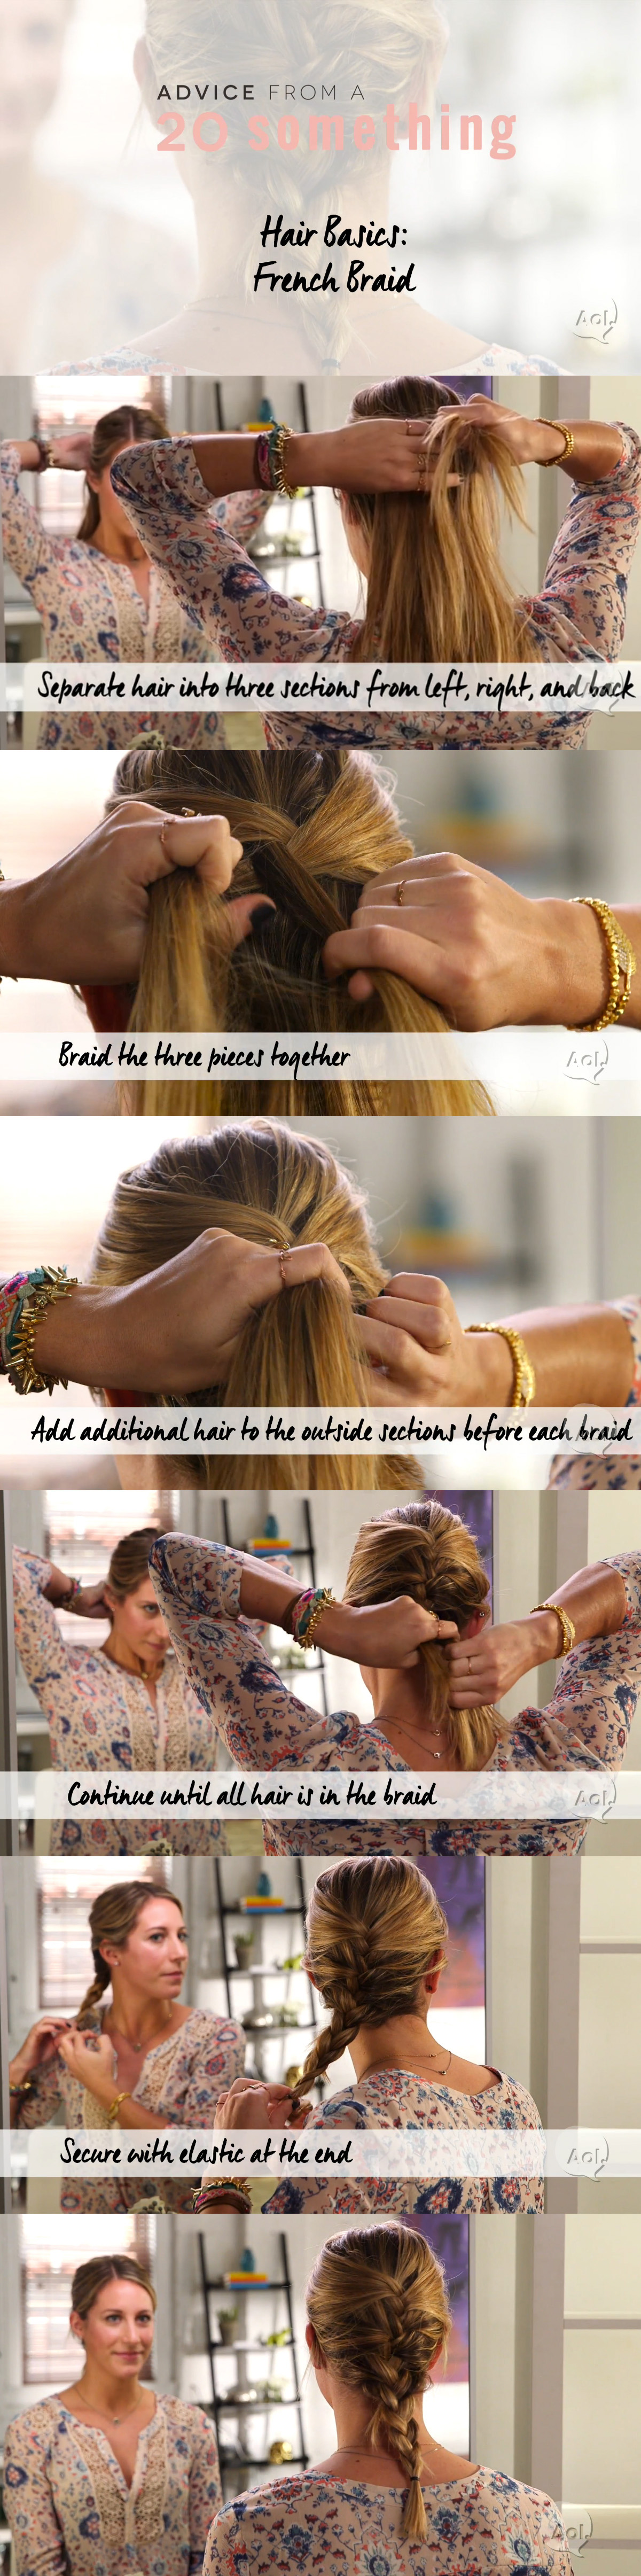 How To Make The Perfect French Braid brought to you by Advice from a Twenty Something + AOL.com